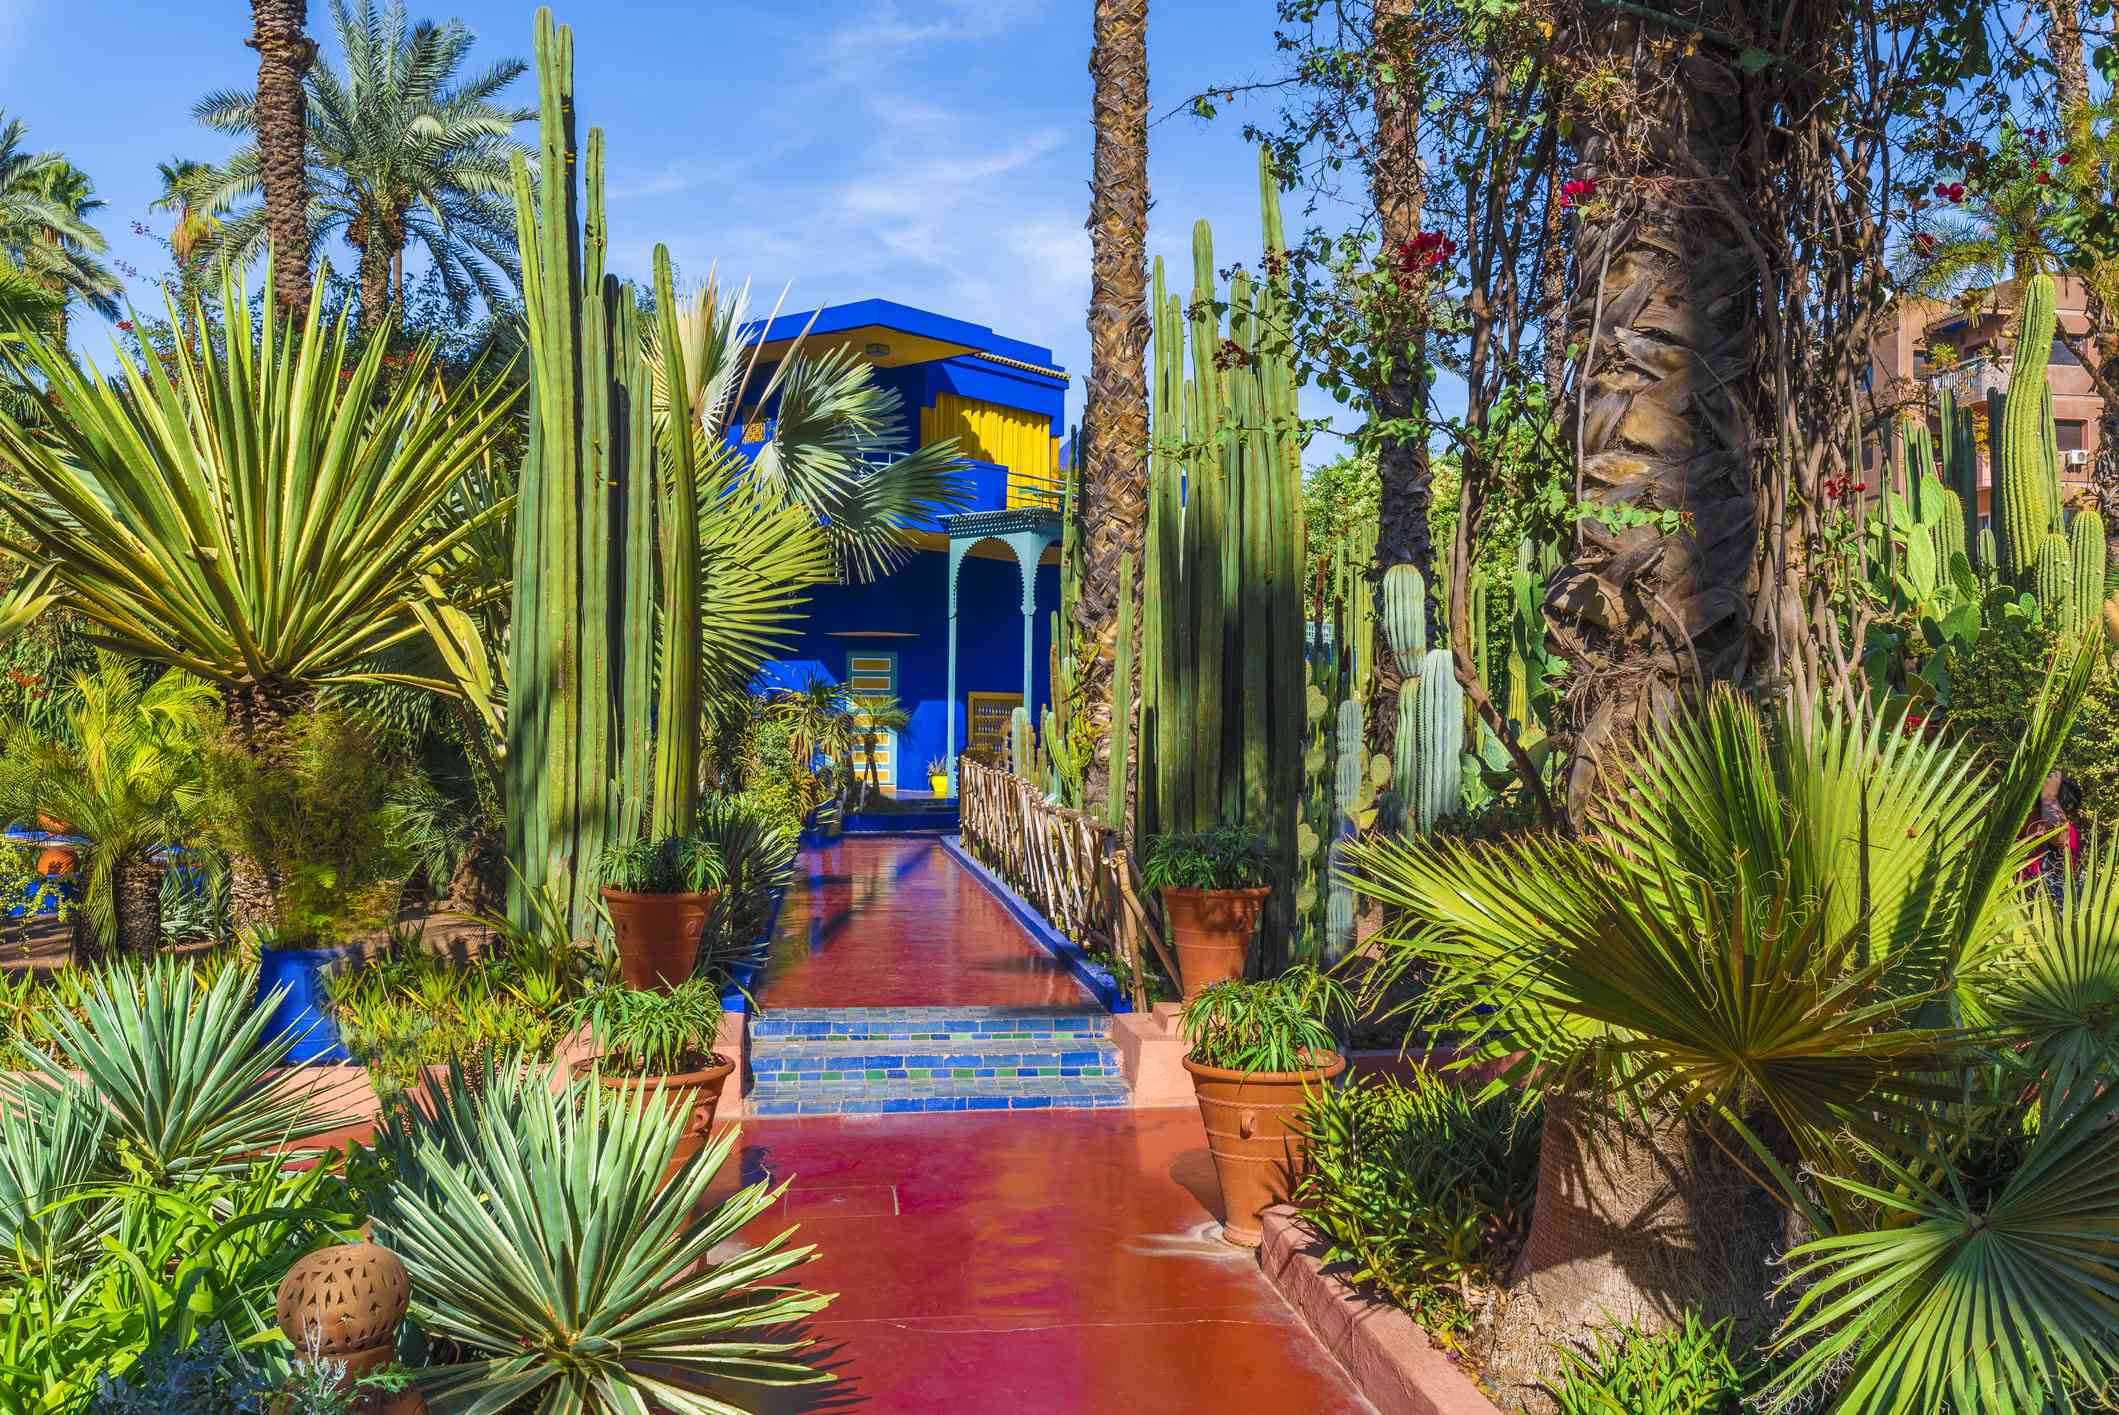 Tropical garden at Le Jardin Majorelle with blue building, red pathway, and cacti